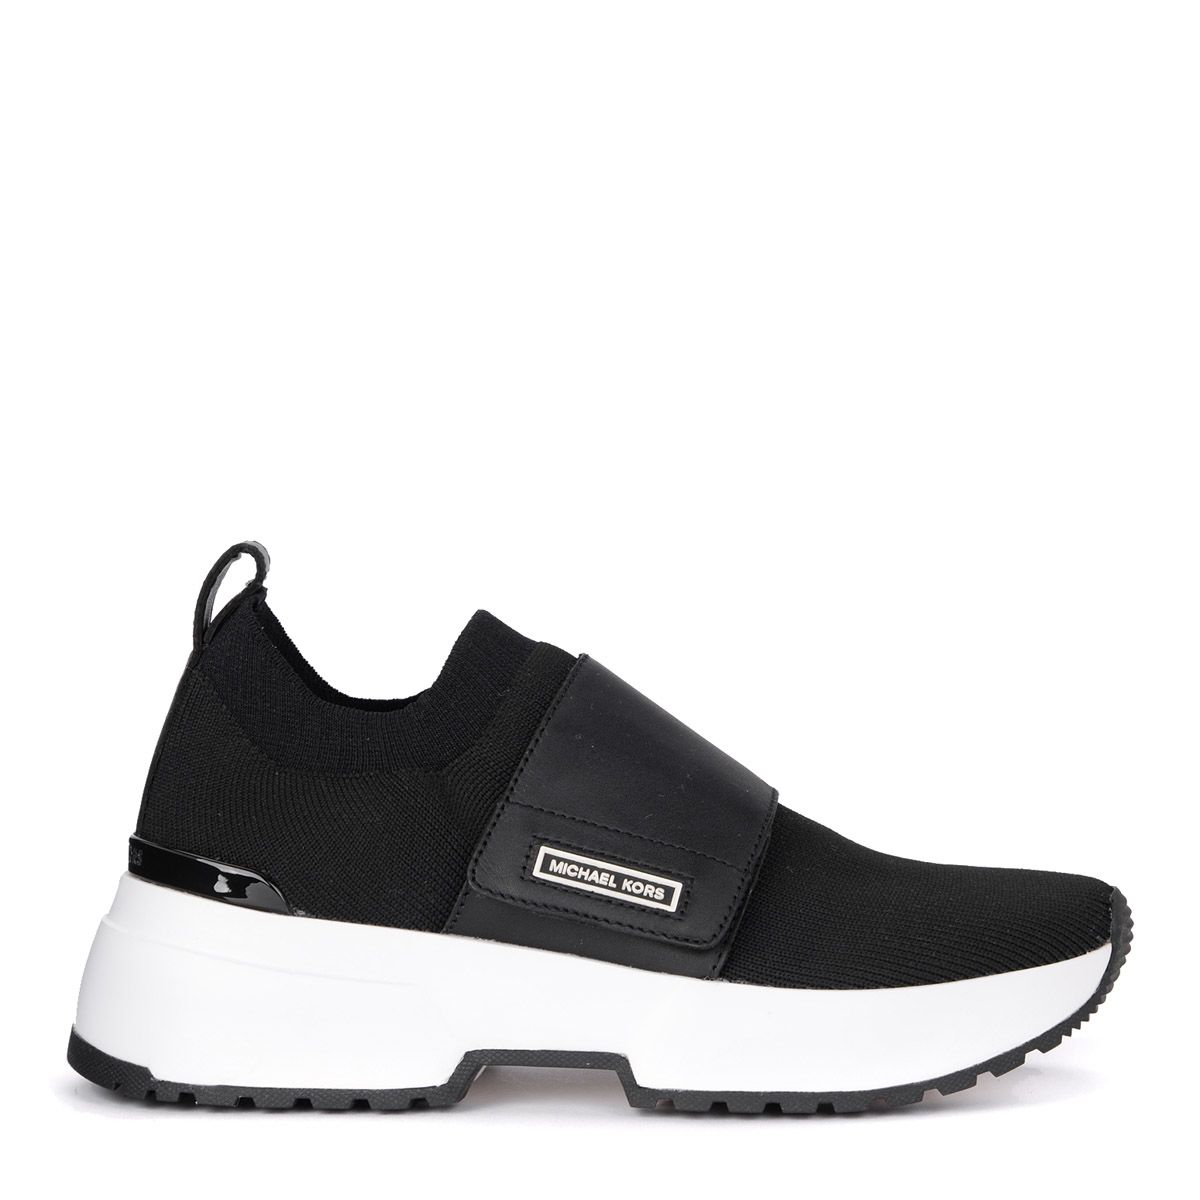 Cosmo Knit Slip-On Sneakers in Nero